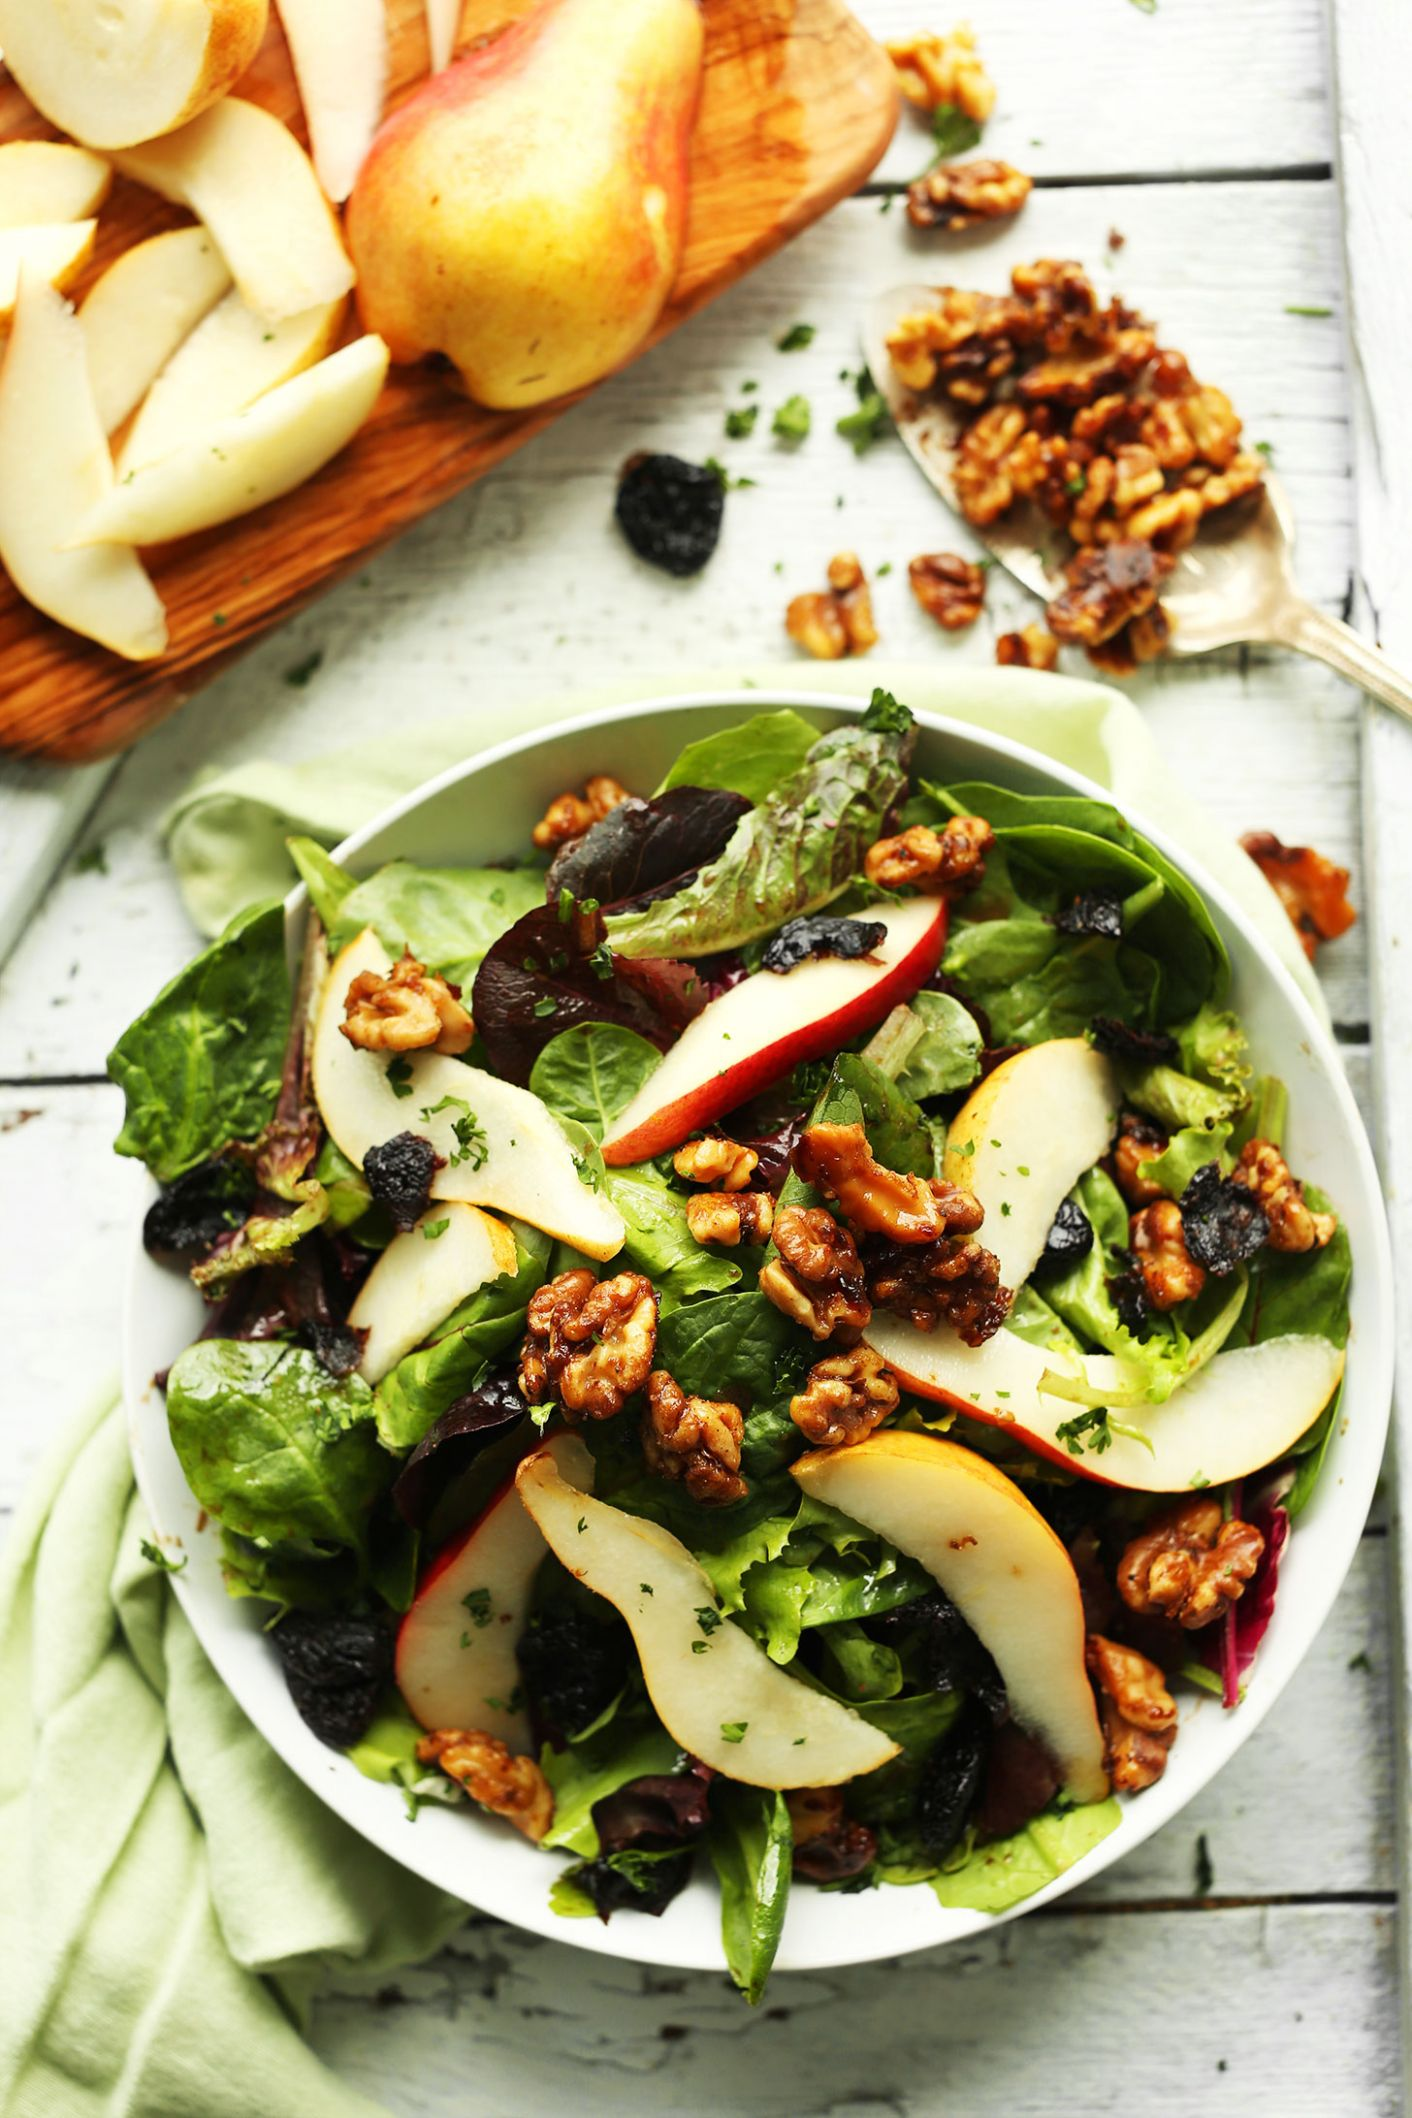 Pear Balsamic Salad with Dried Cherries and Candied Walnuts - Salad Recipes Gluten Free